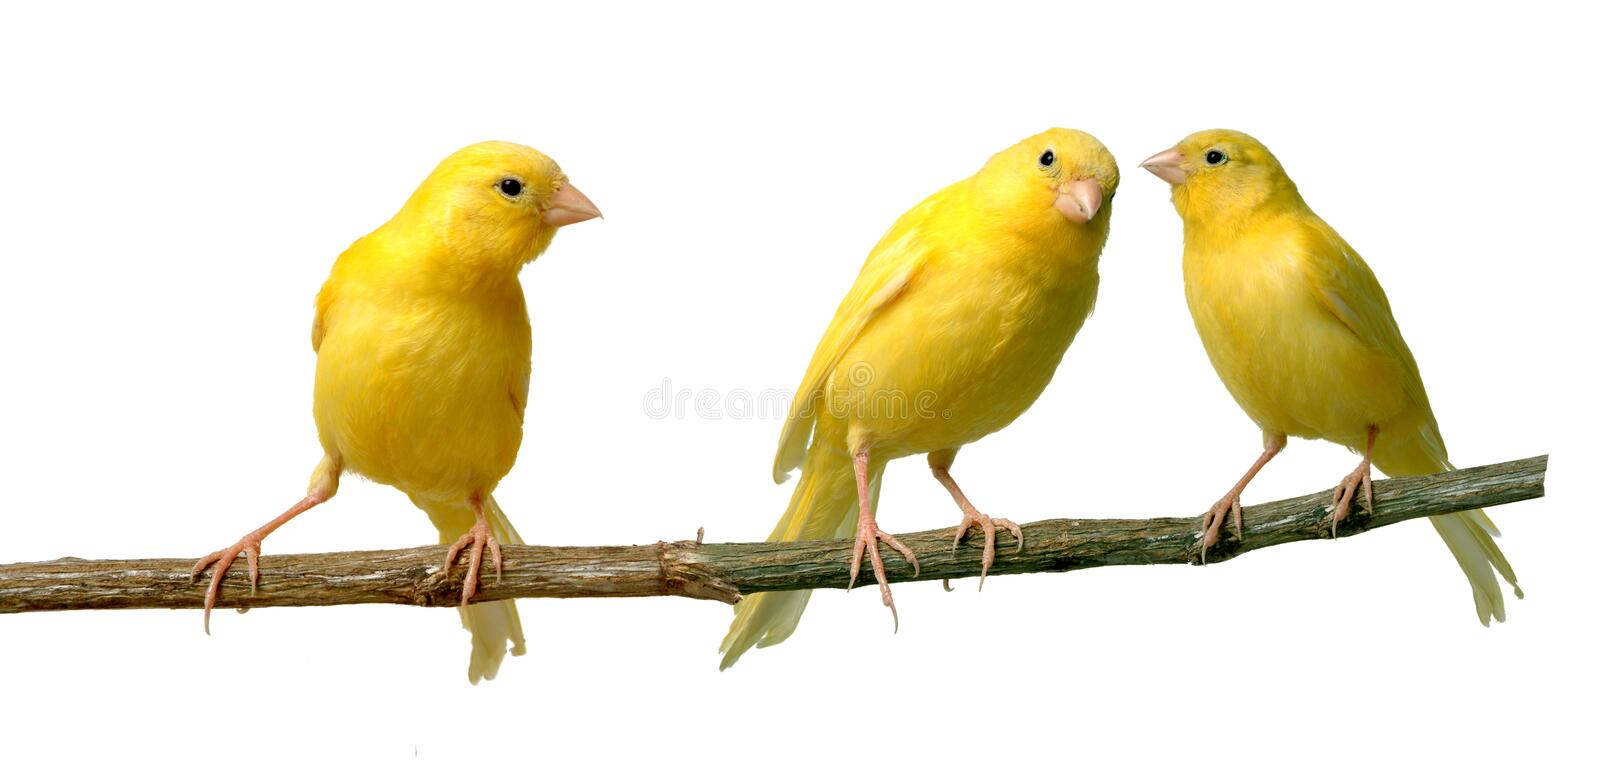 Canaries. Two canaries communicating to each other while a third is listening